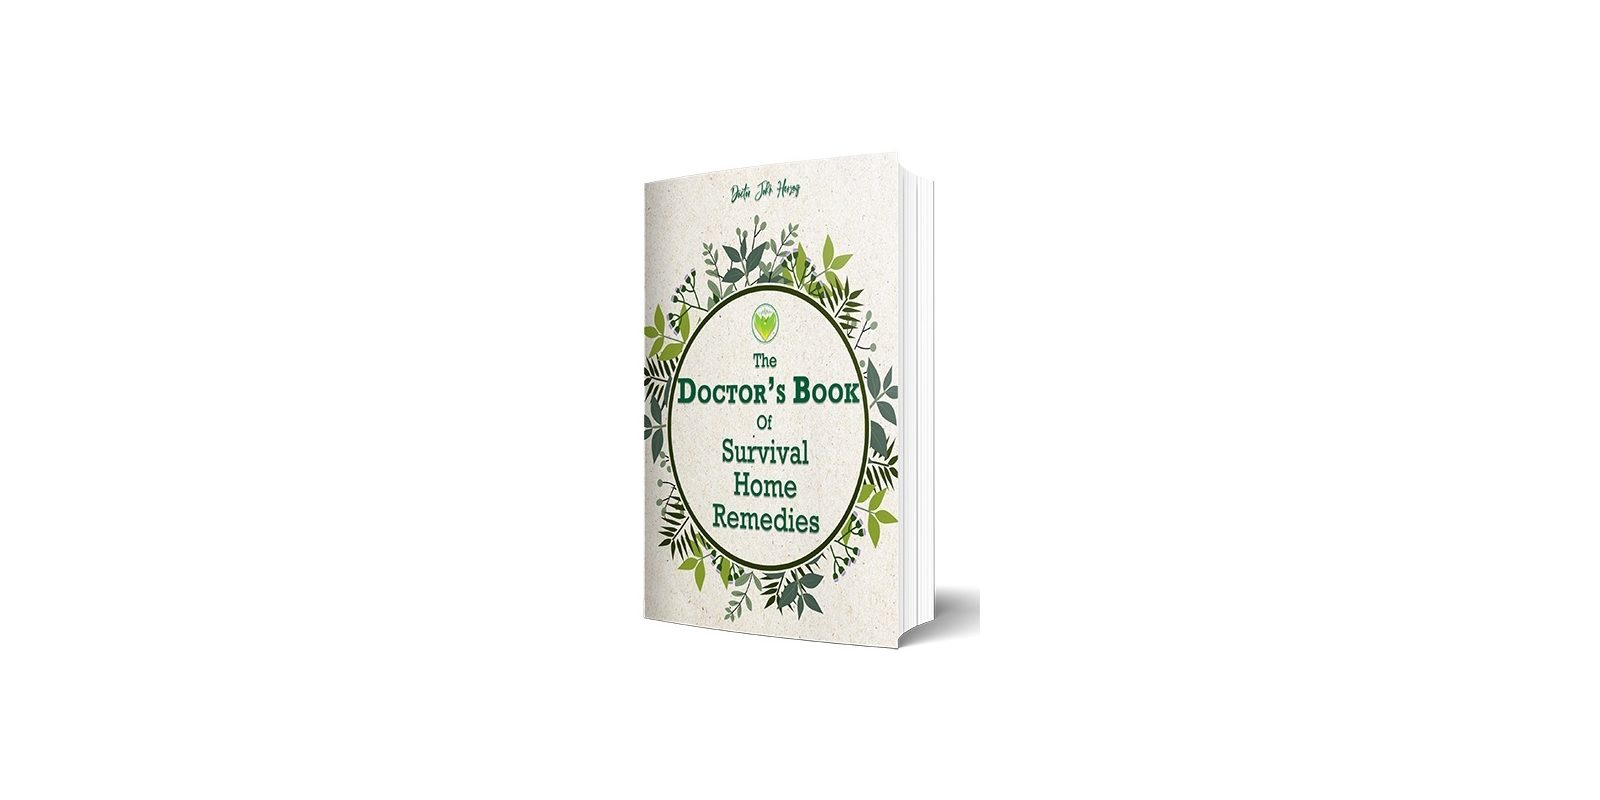 Doctor's Book Of Survival Home Remedies Review